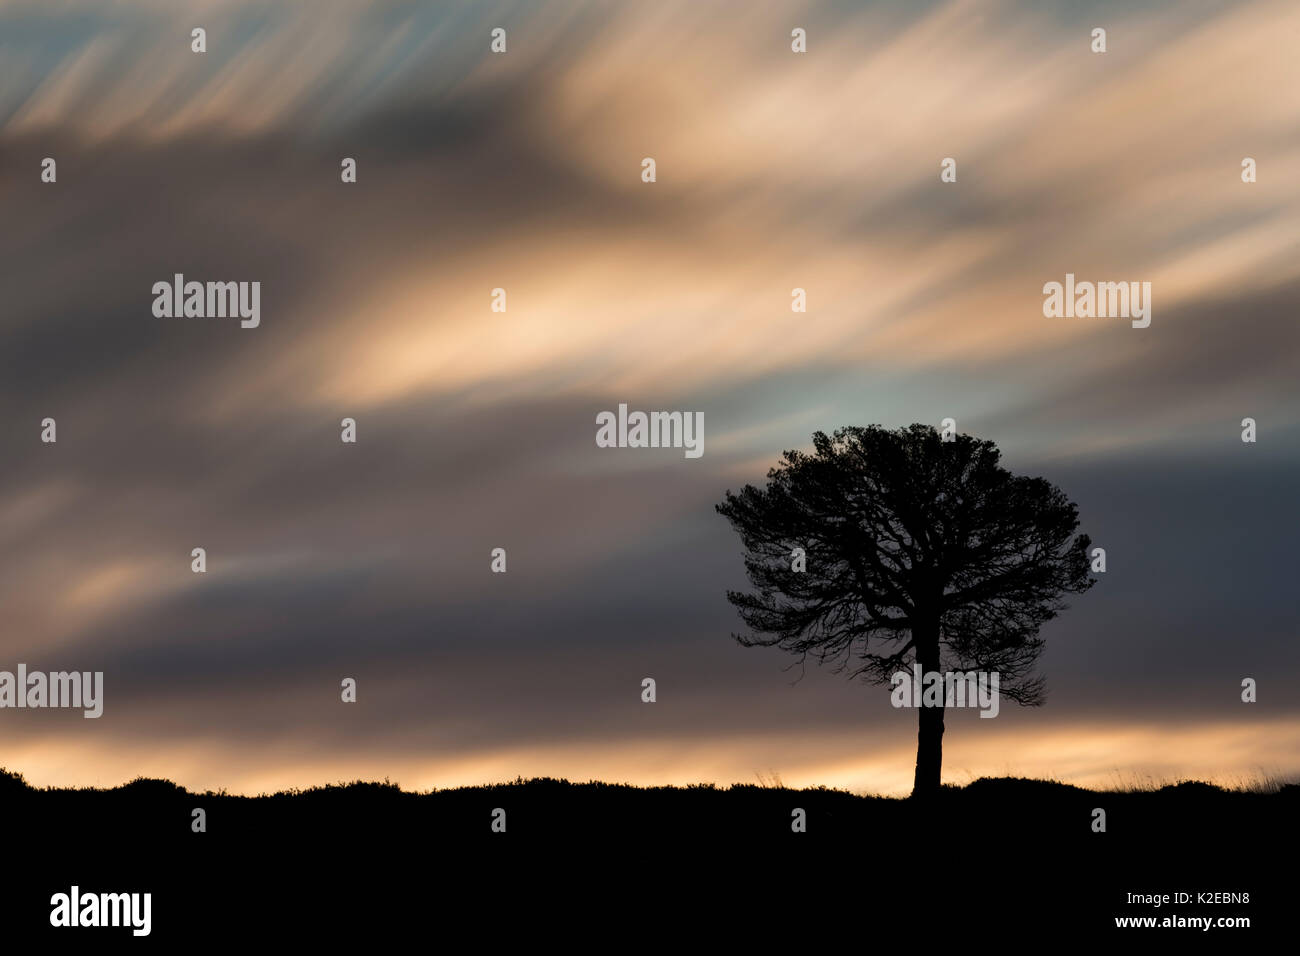 Lone Scots pine (Pinus sylvestris) silhouetted at dawn, Kinveachy Forest, Cairngorms National Park, Scotland, UK, October. - Stock Image